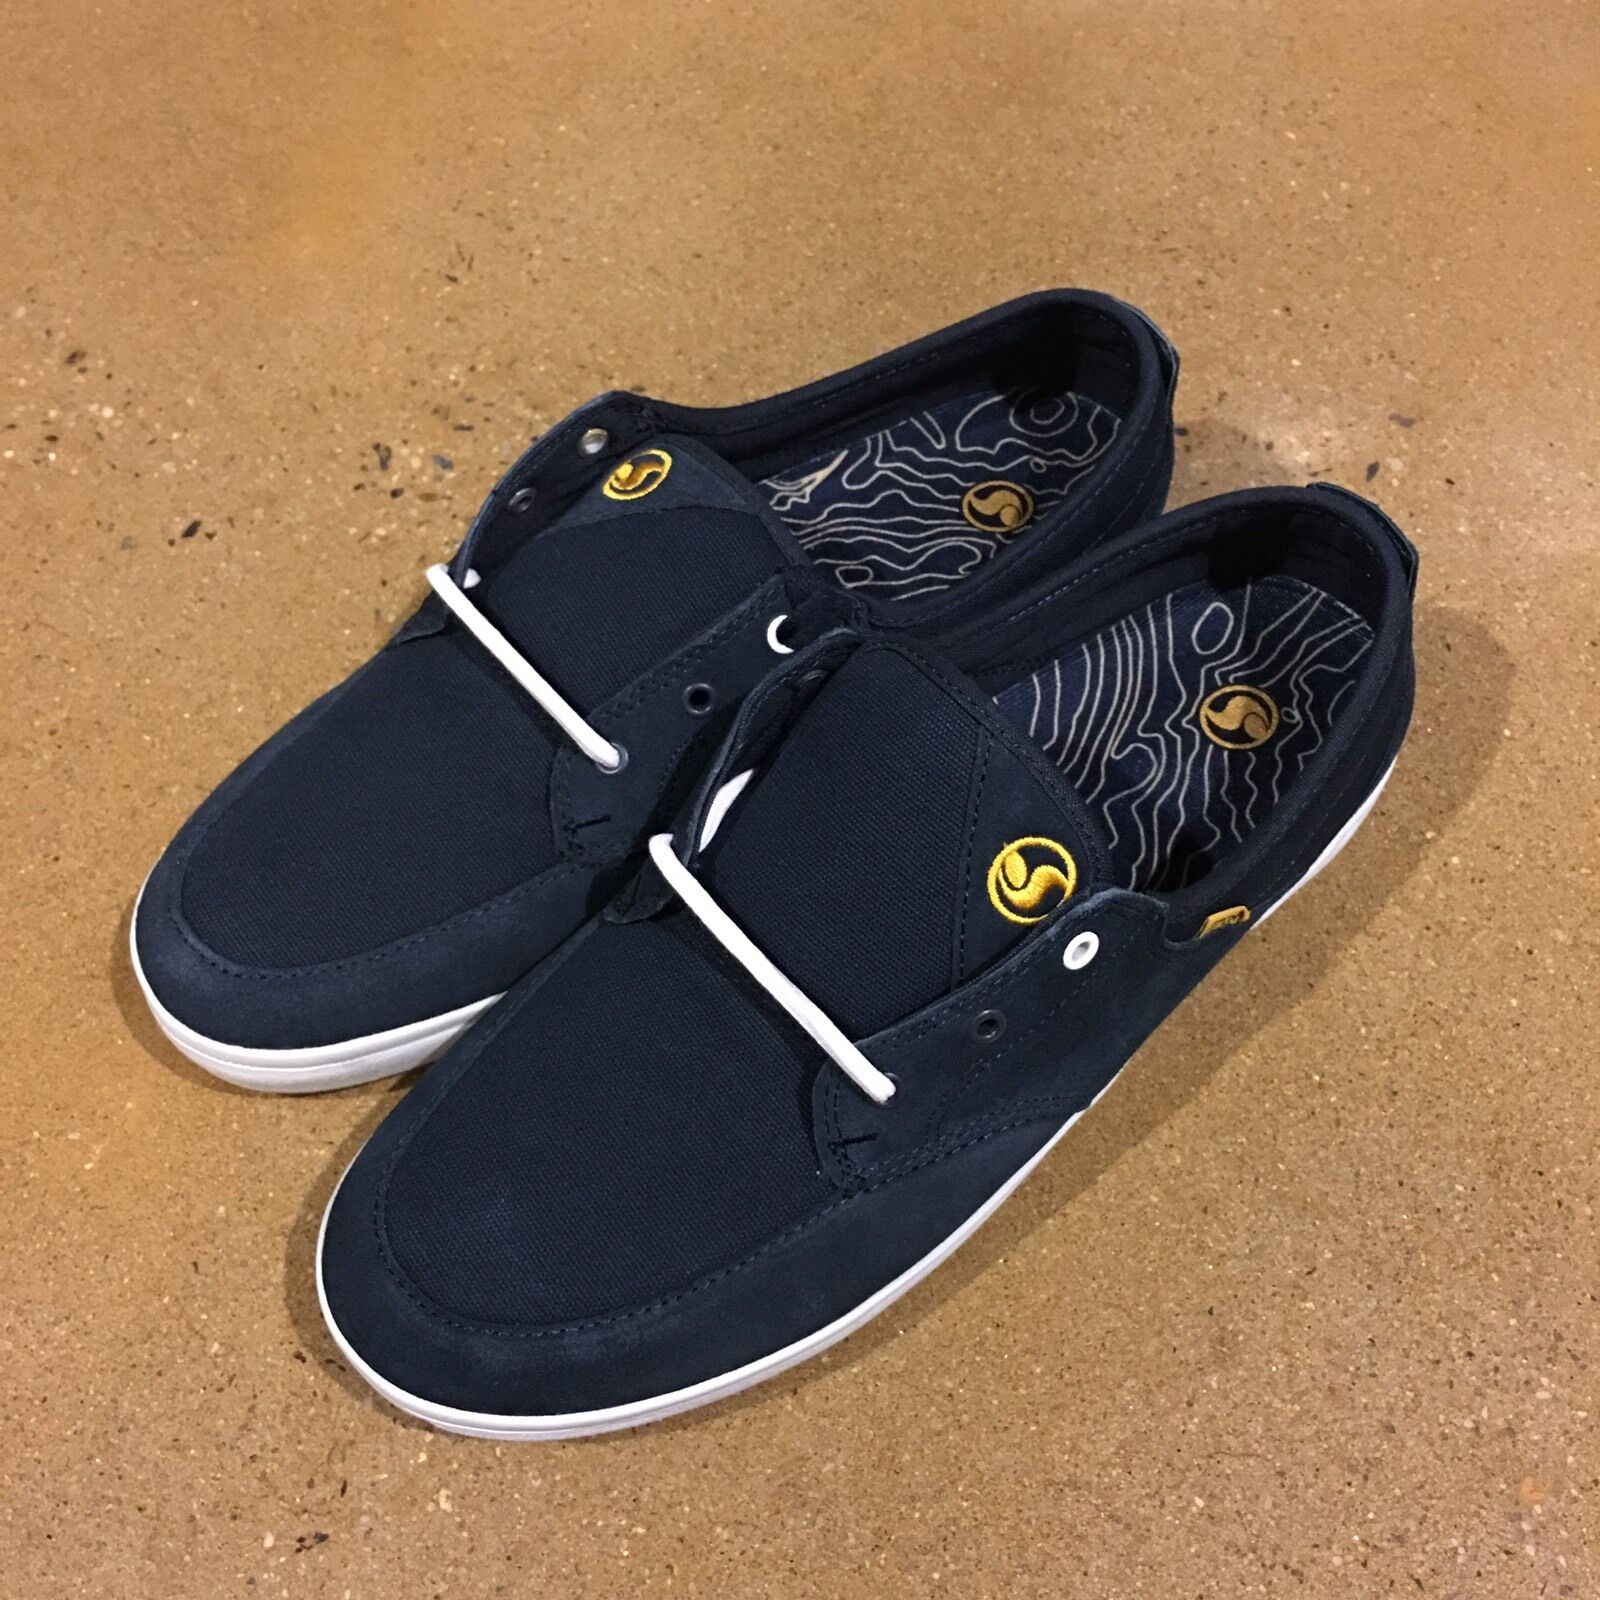 DVS Landmark Size 12 US Navy Suede BMX DC Skate Deck Boat Shoes Sneakers